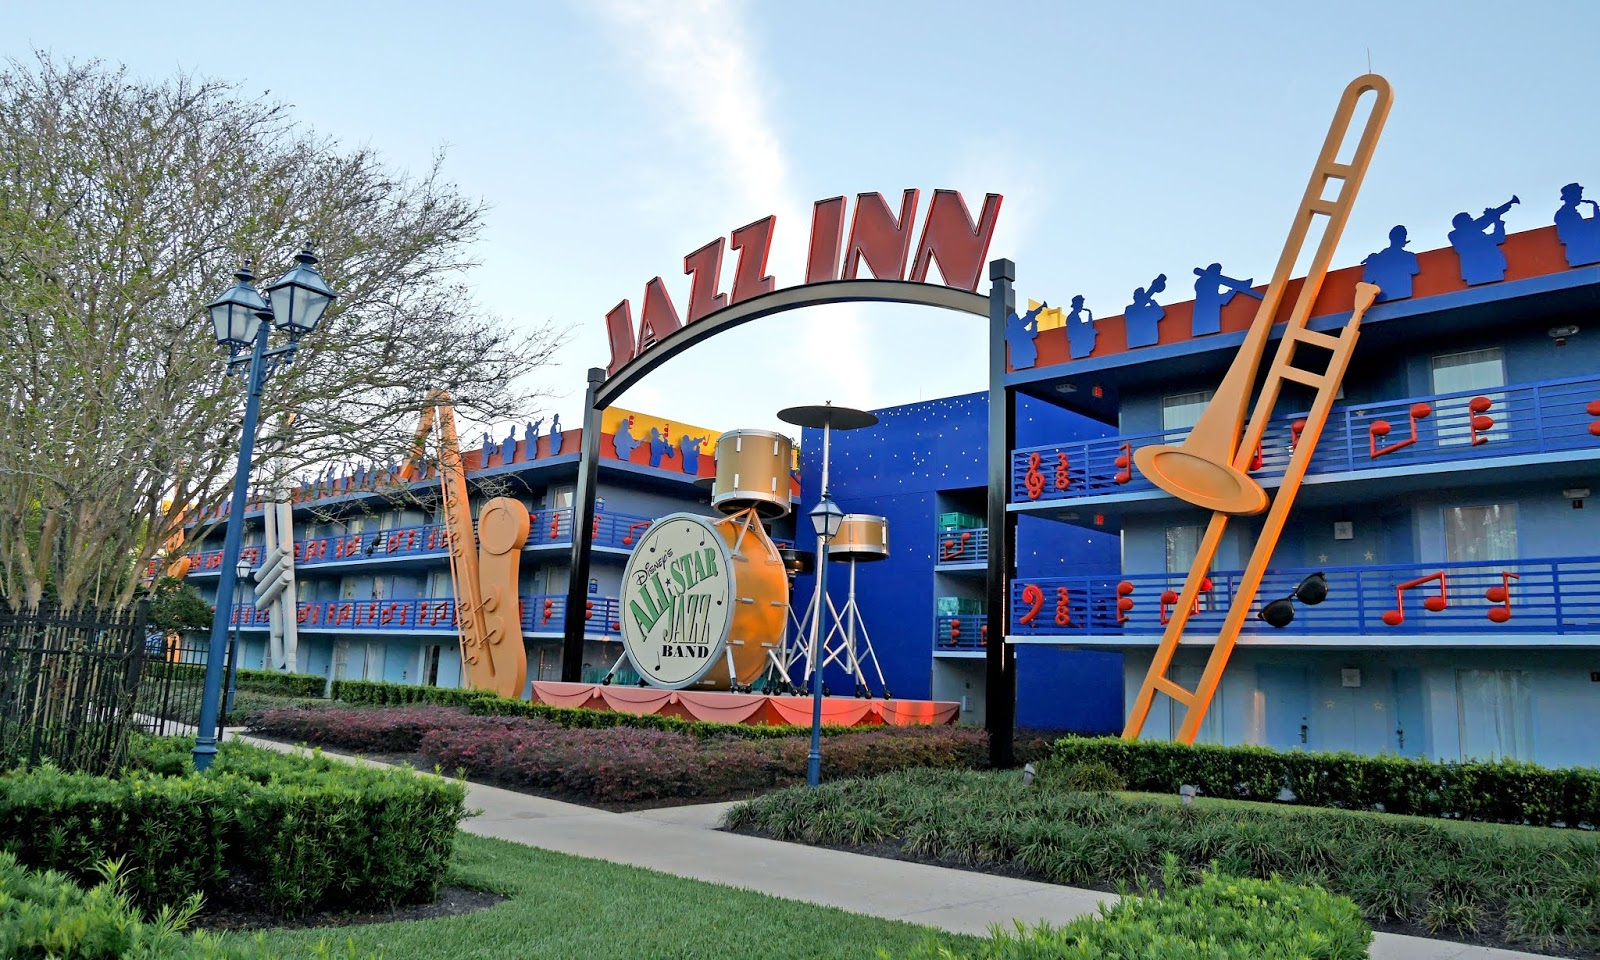 Jazz Inn at Disney's All Star Music resort, Florida